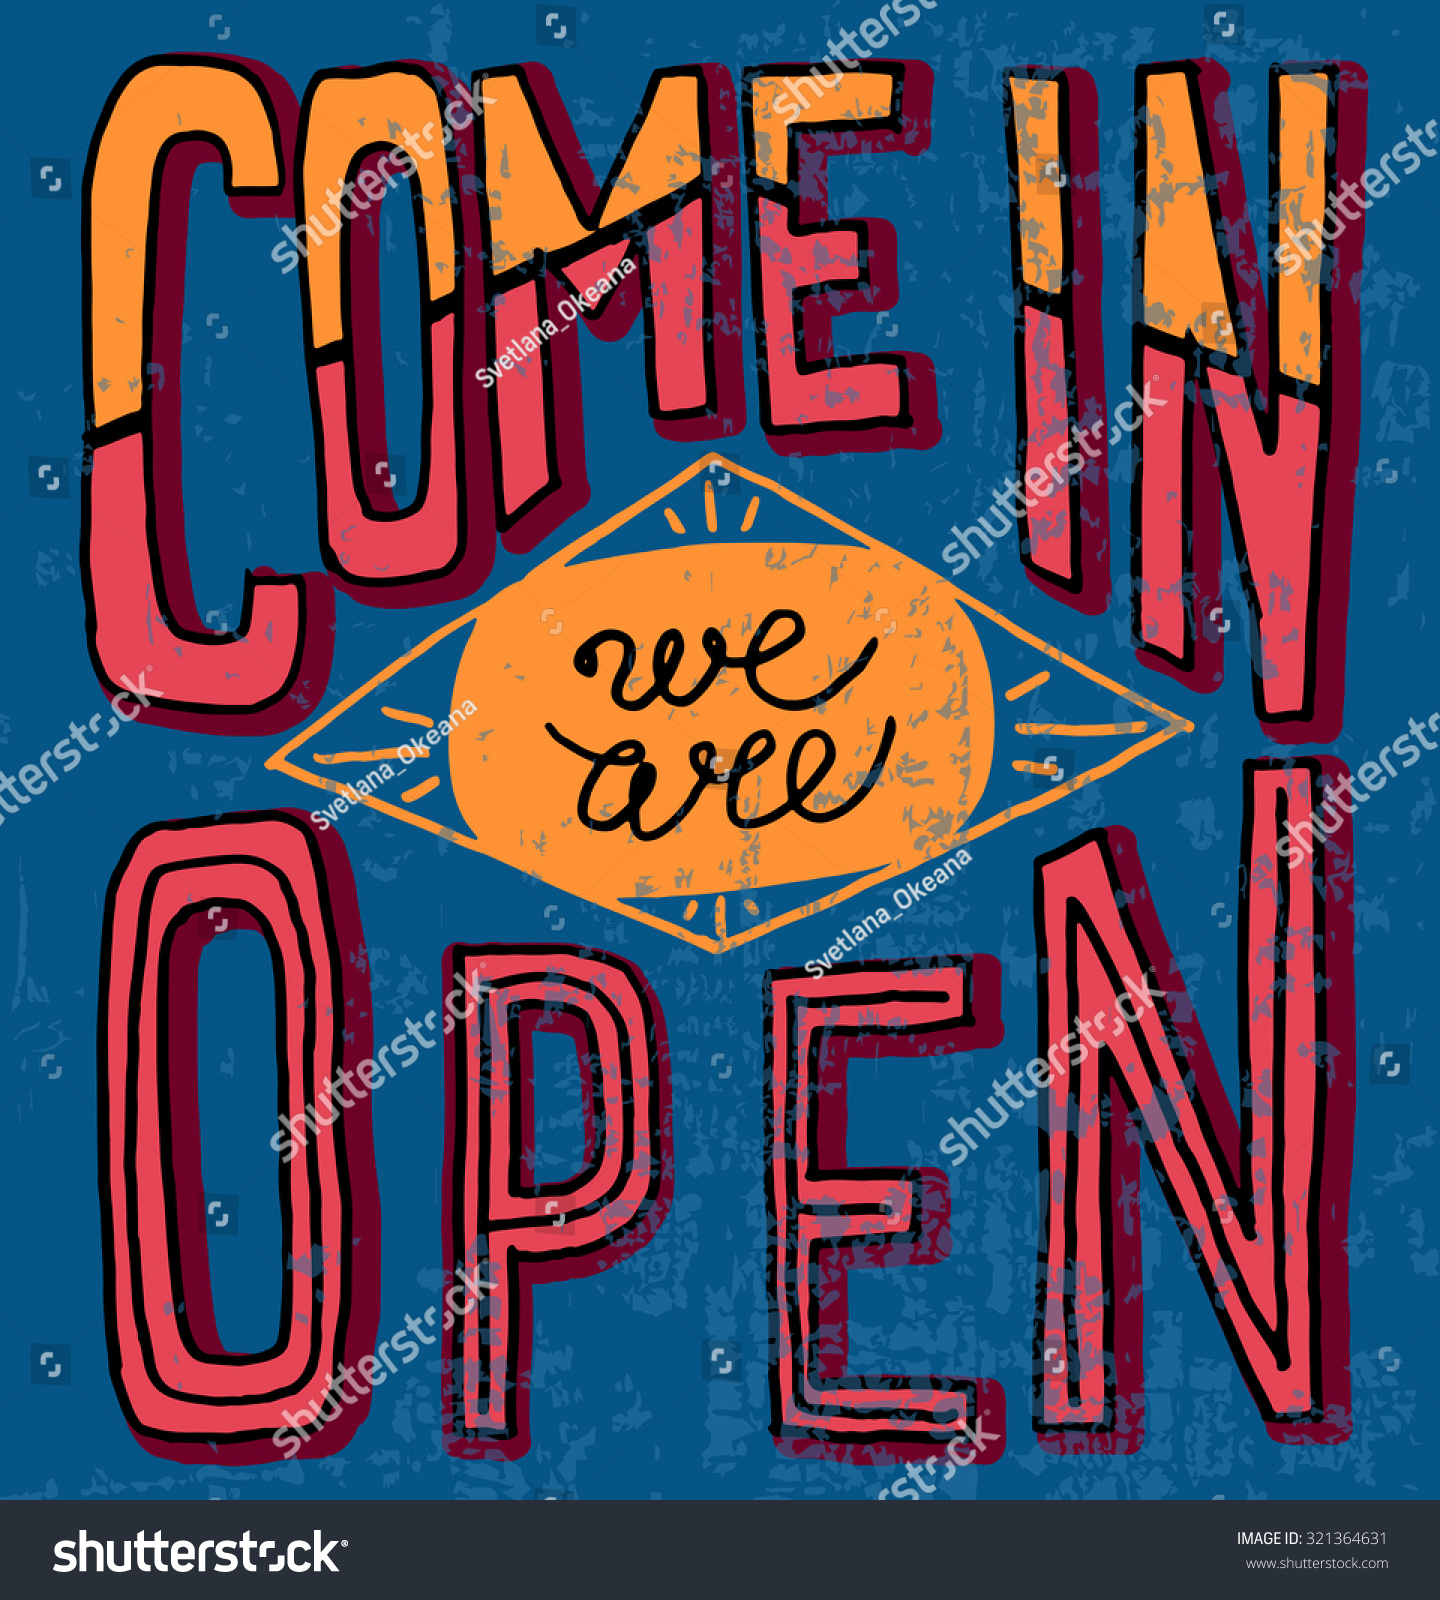 Come We Open Hand Drawn Restaurant Stock Vector (Royalty Free